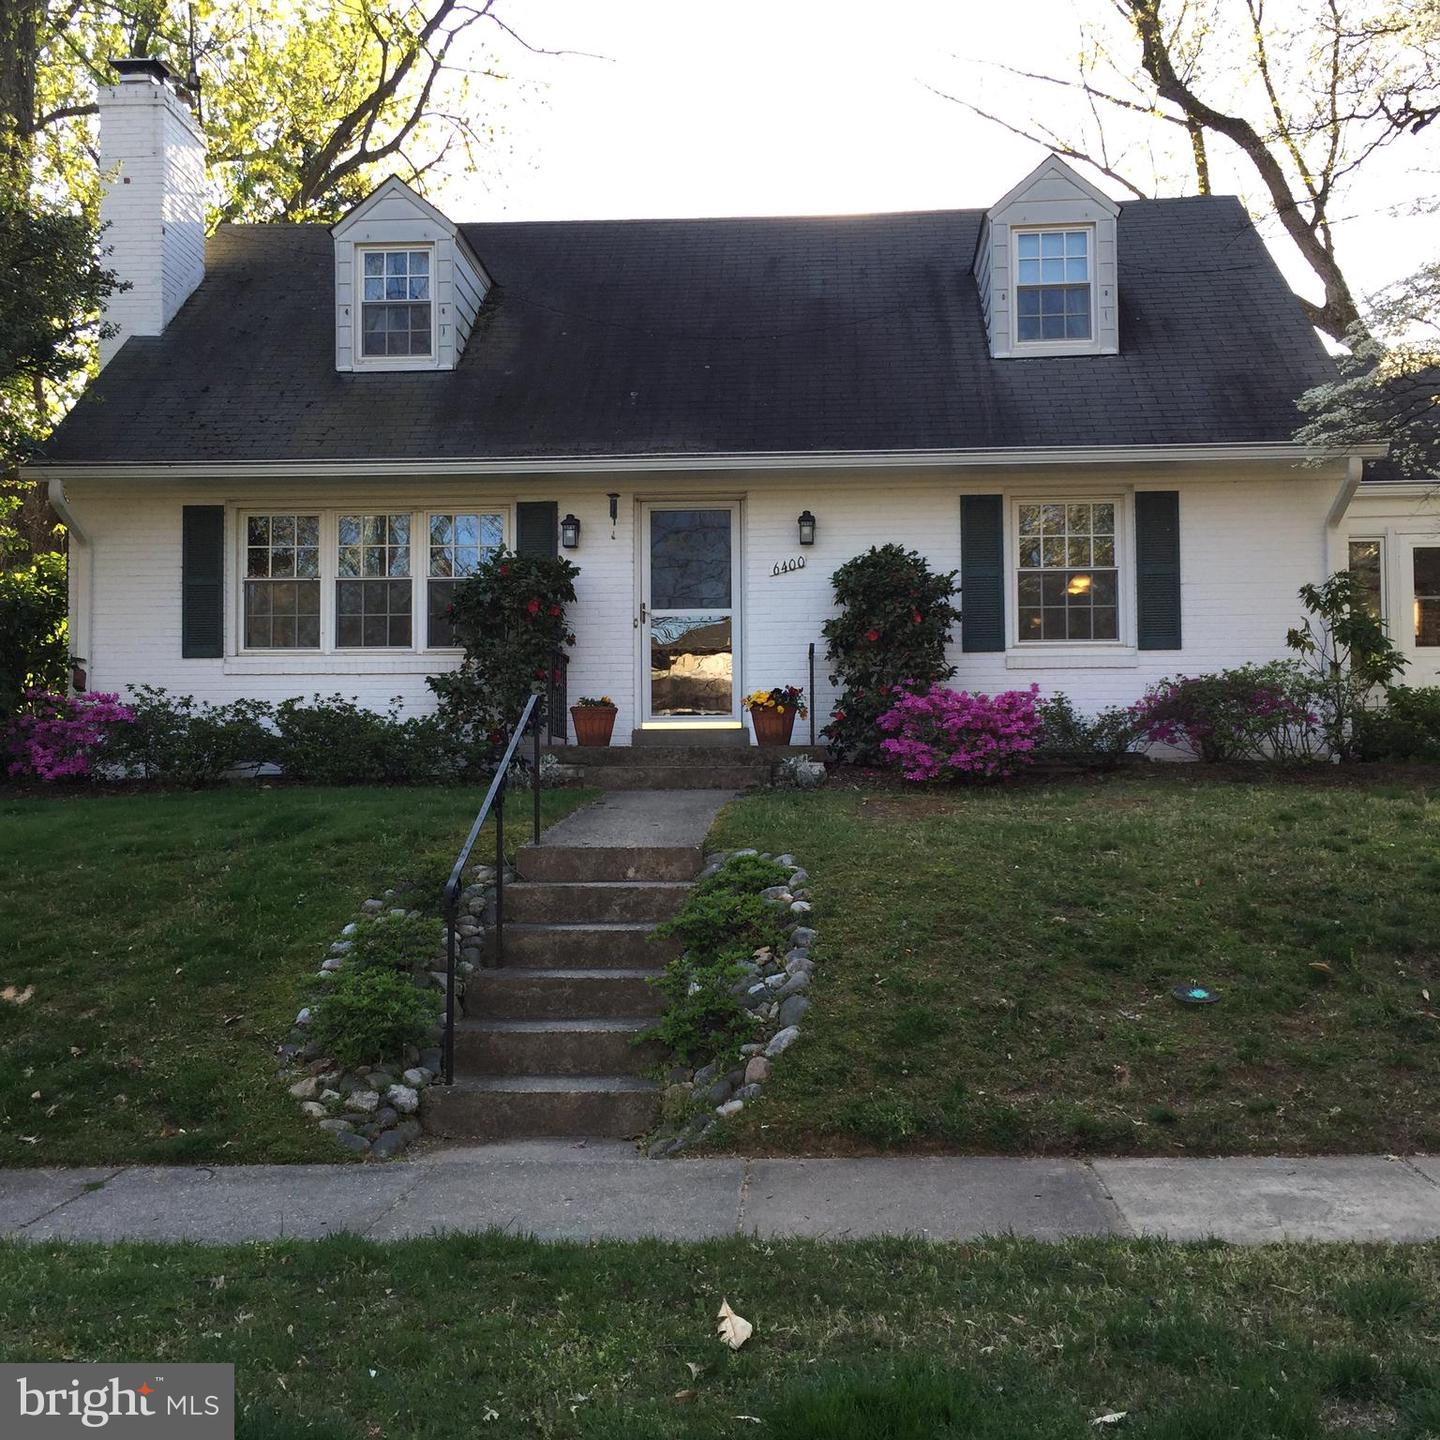 6400 Ruffin Road   - Chevy Chase, Maryland 20815